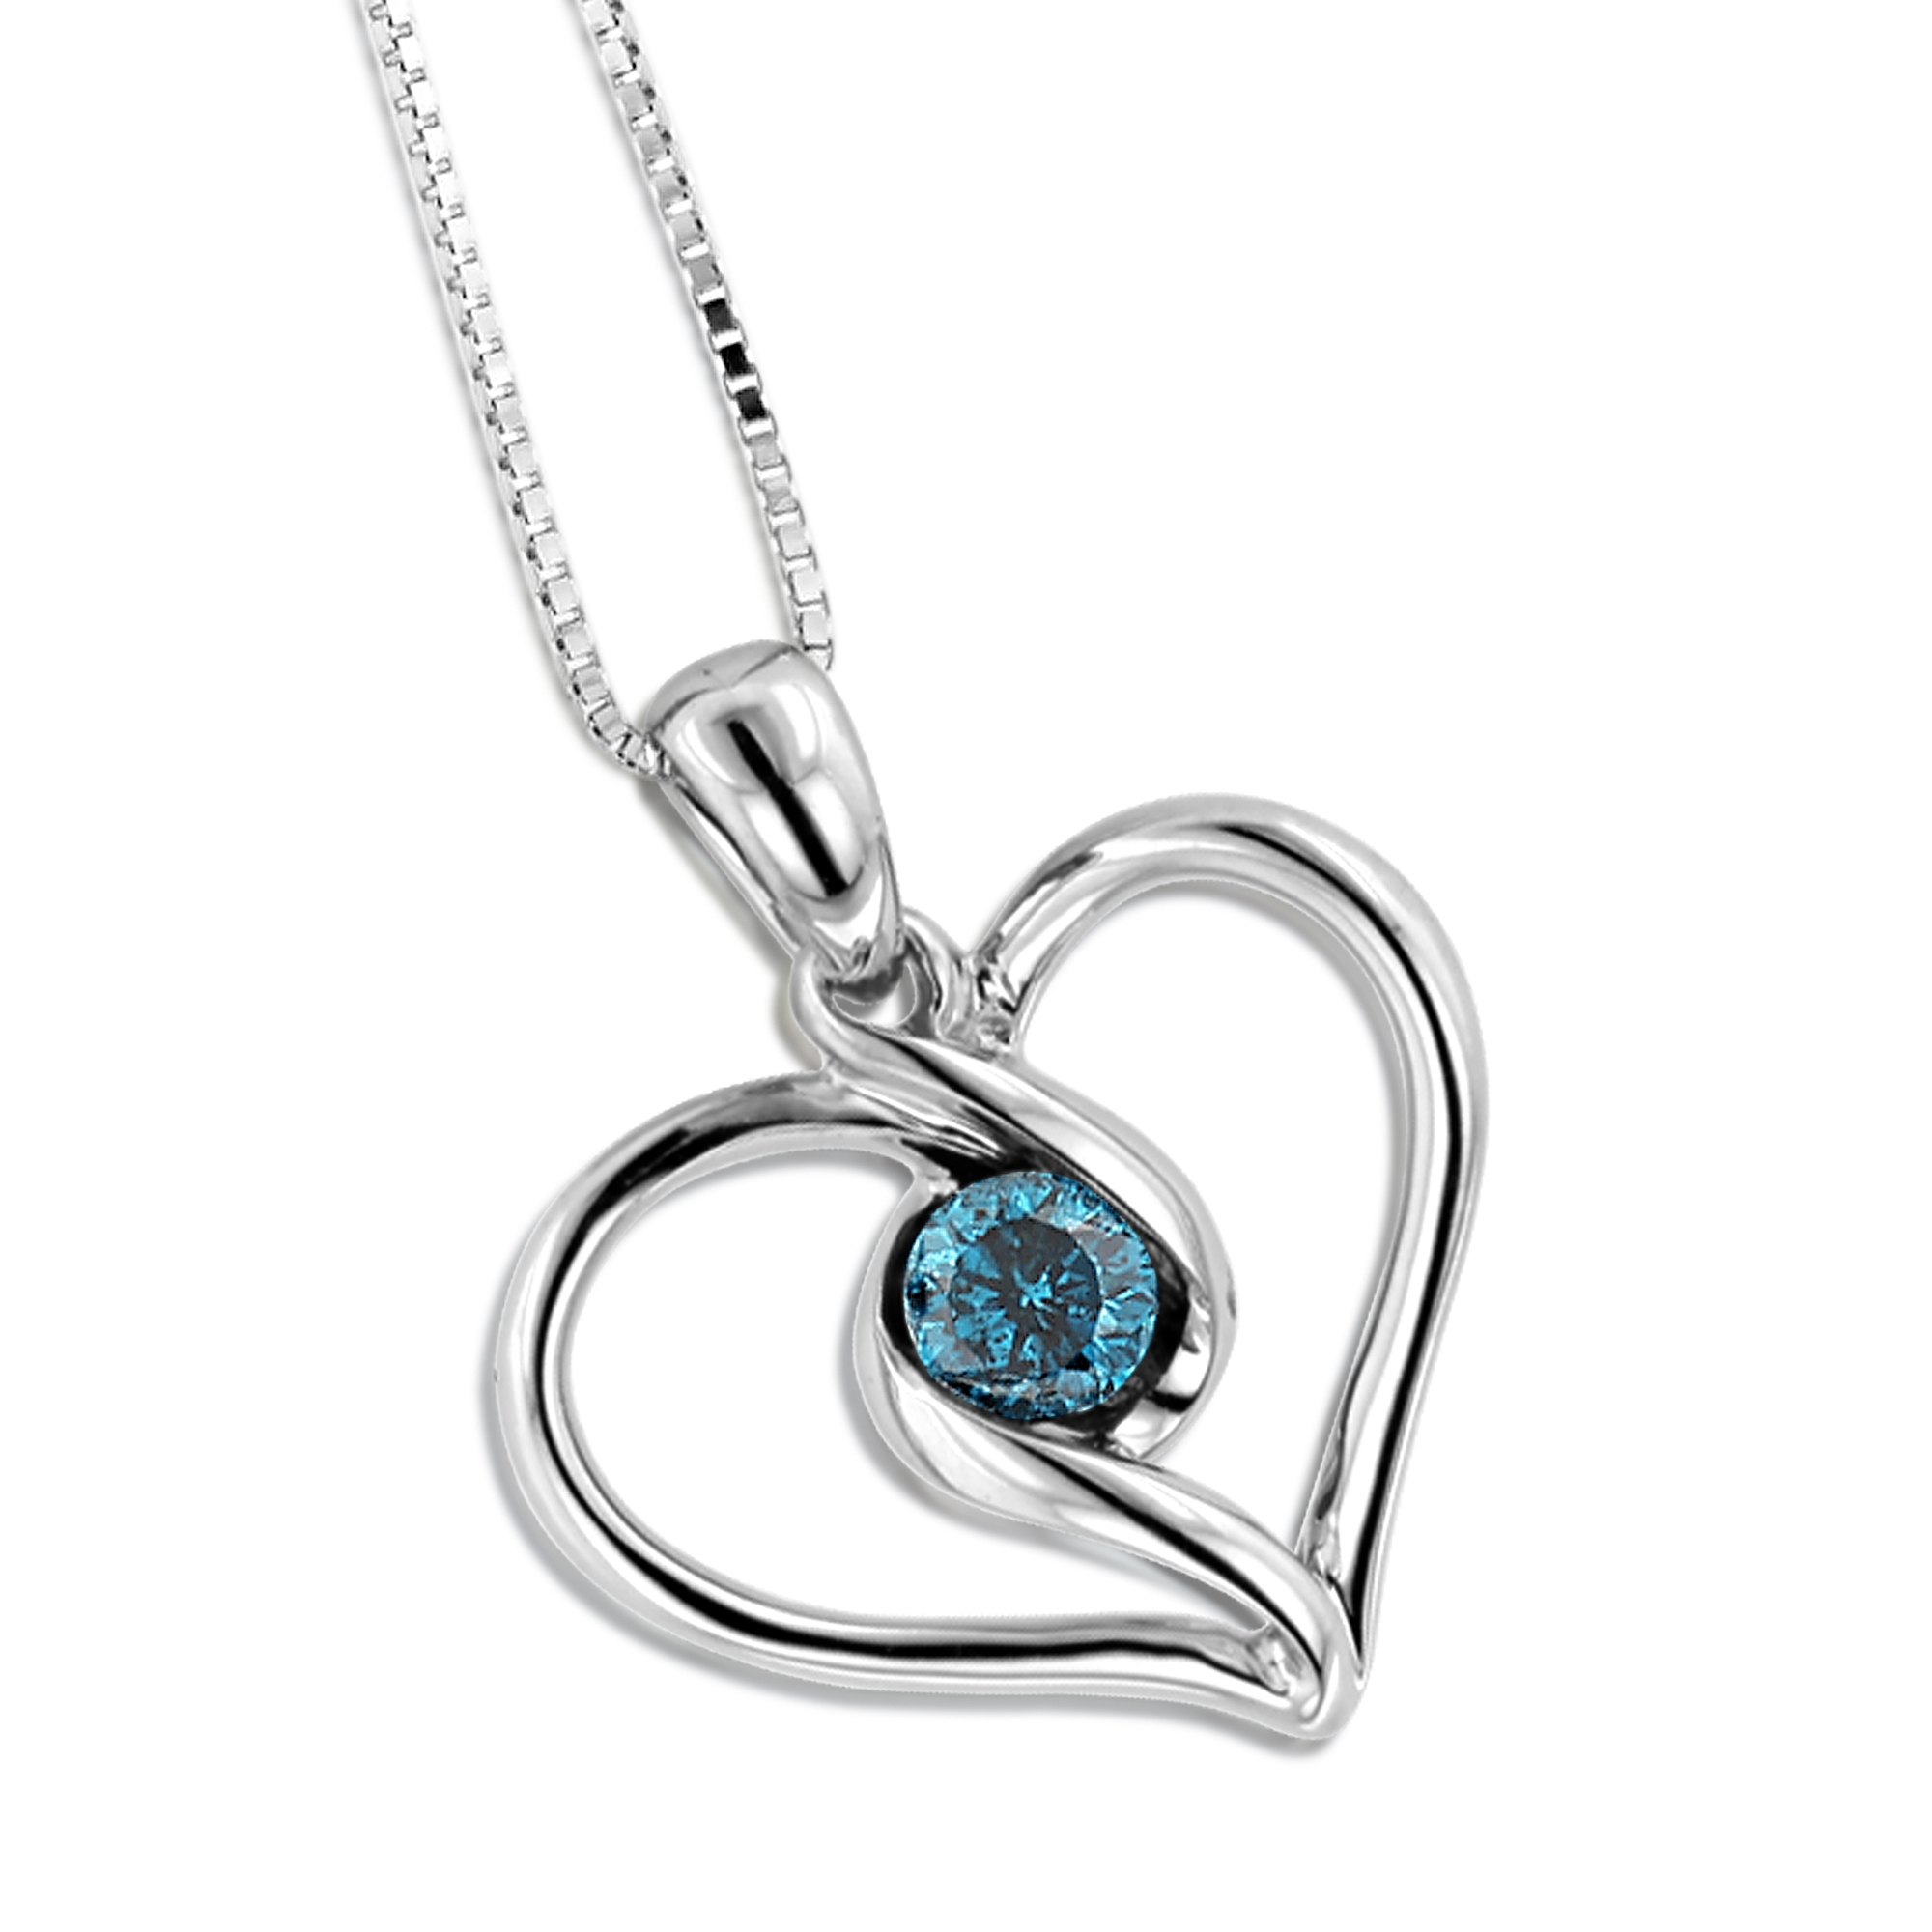 2b1b863ca 14K White Gold Single Blue Diamond Heart Necklace For Women Pendant Main  Image